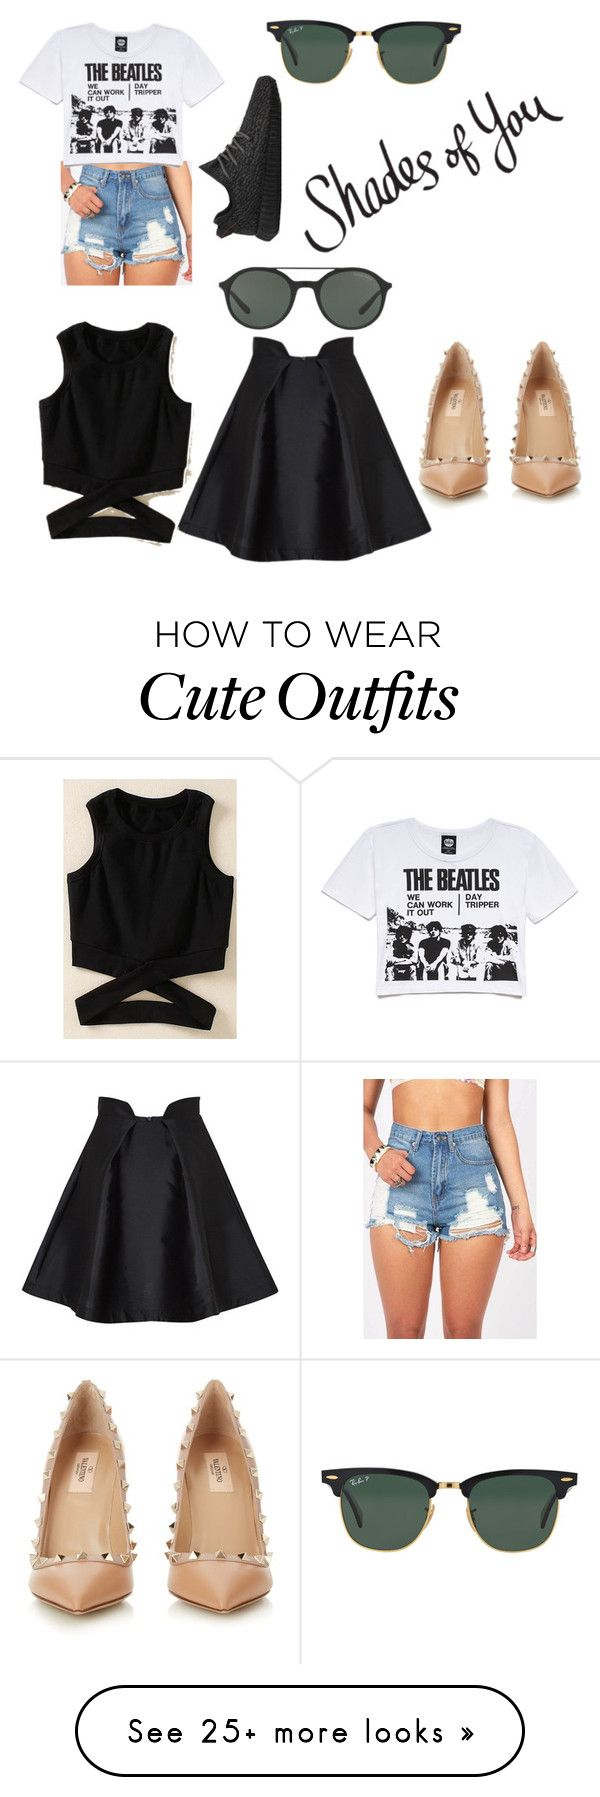 """Two cute summer outfits with glasses"" by andreabarron on Polyvore featuring Ray-Ban, Giorgio Armani, Forever 21, adidas, Paper London, Valentino and shadesofyou"